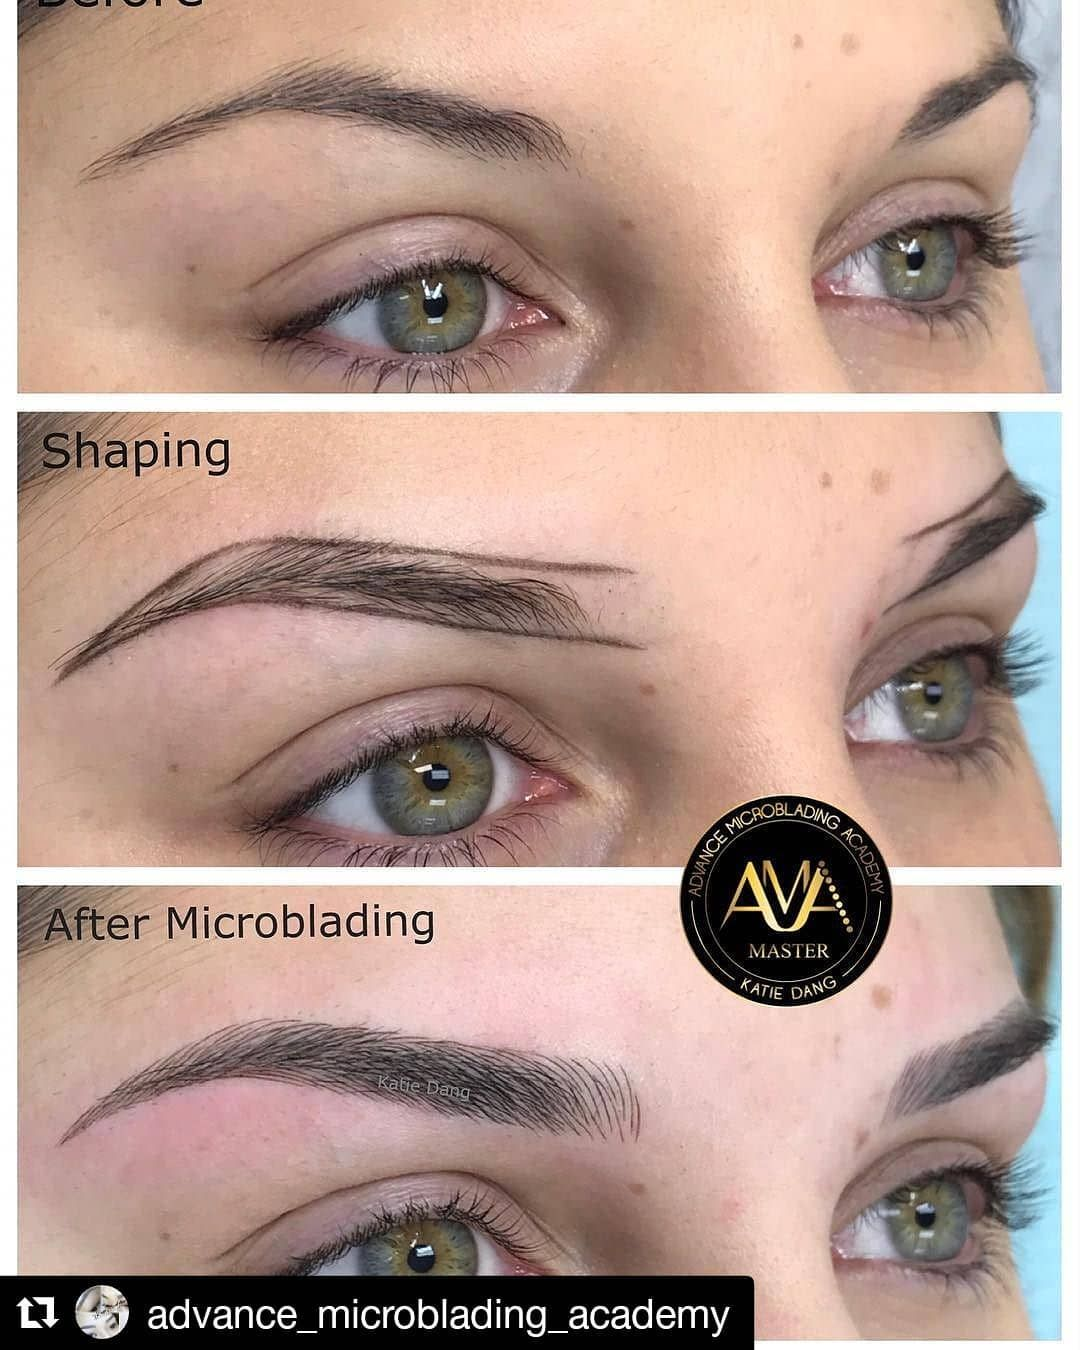 Repost Advance Microblading Academy Get Repost Classic Microblading By Katie Dang Service Trai Register For Classes Permanent Makeup Eyebrows On Fleek